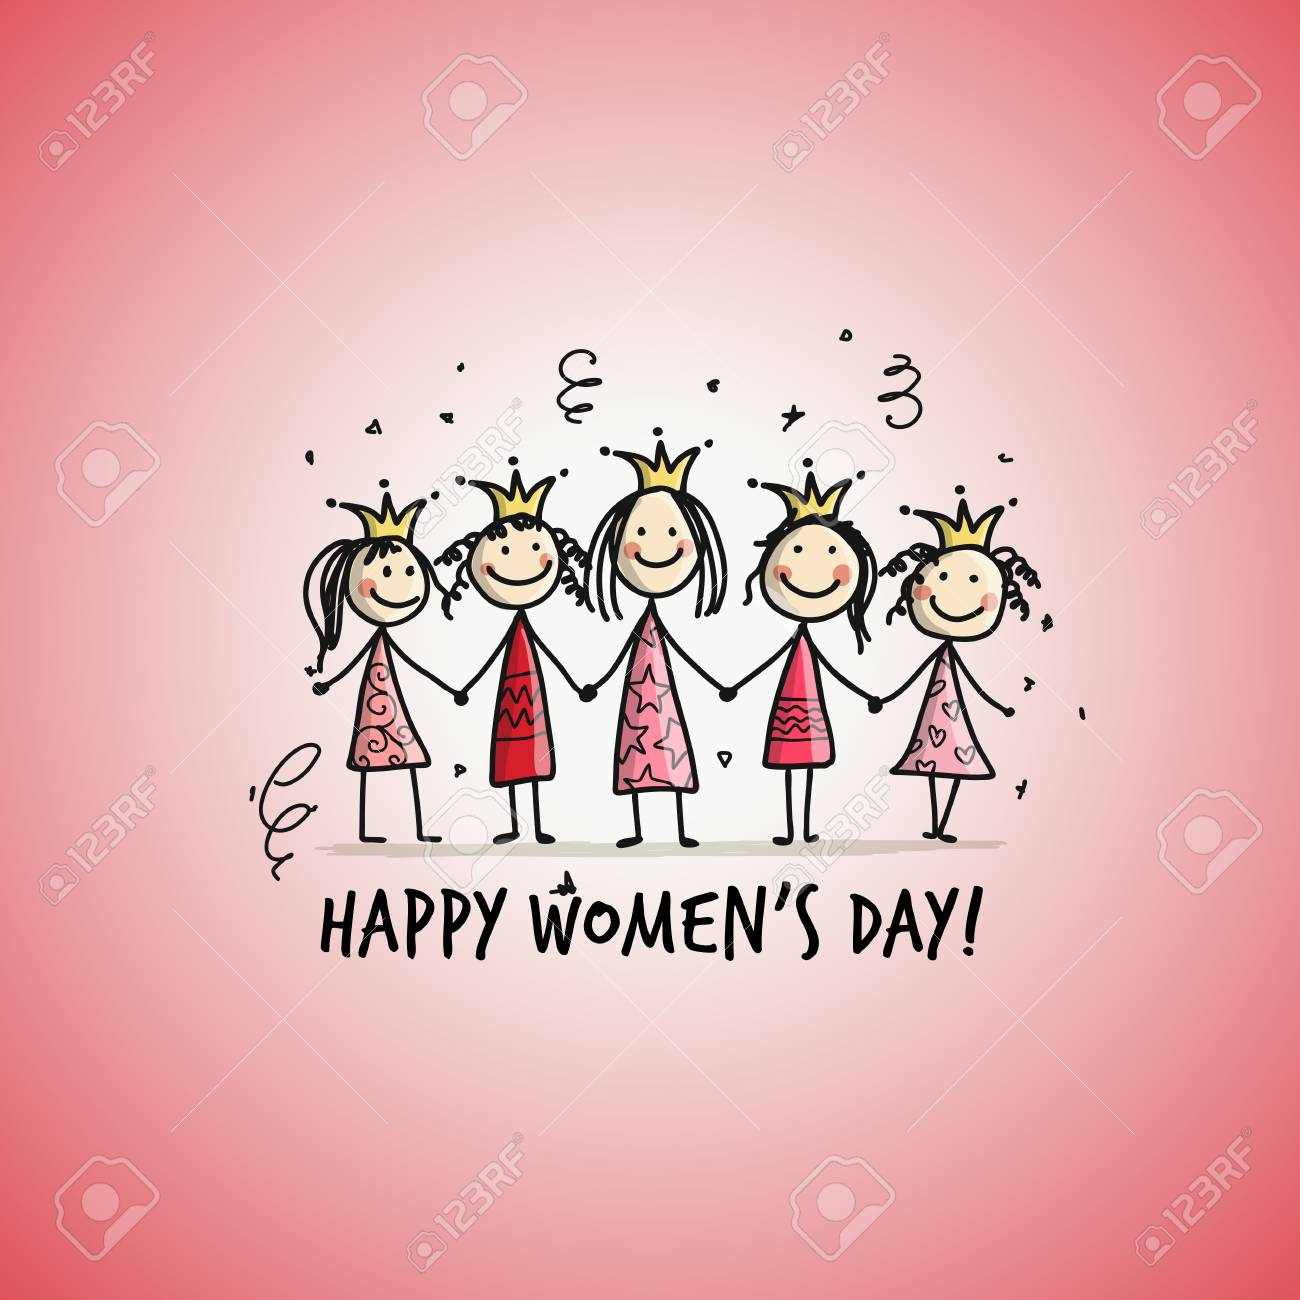 Happy womens day Card with pretty girls for your design - 96844916